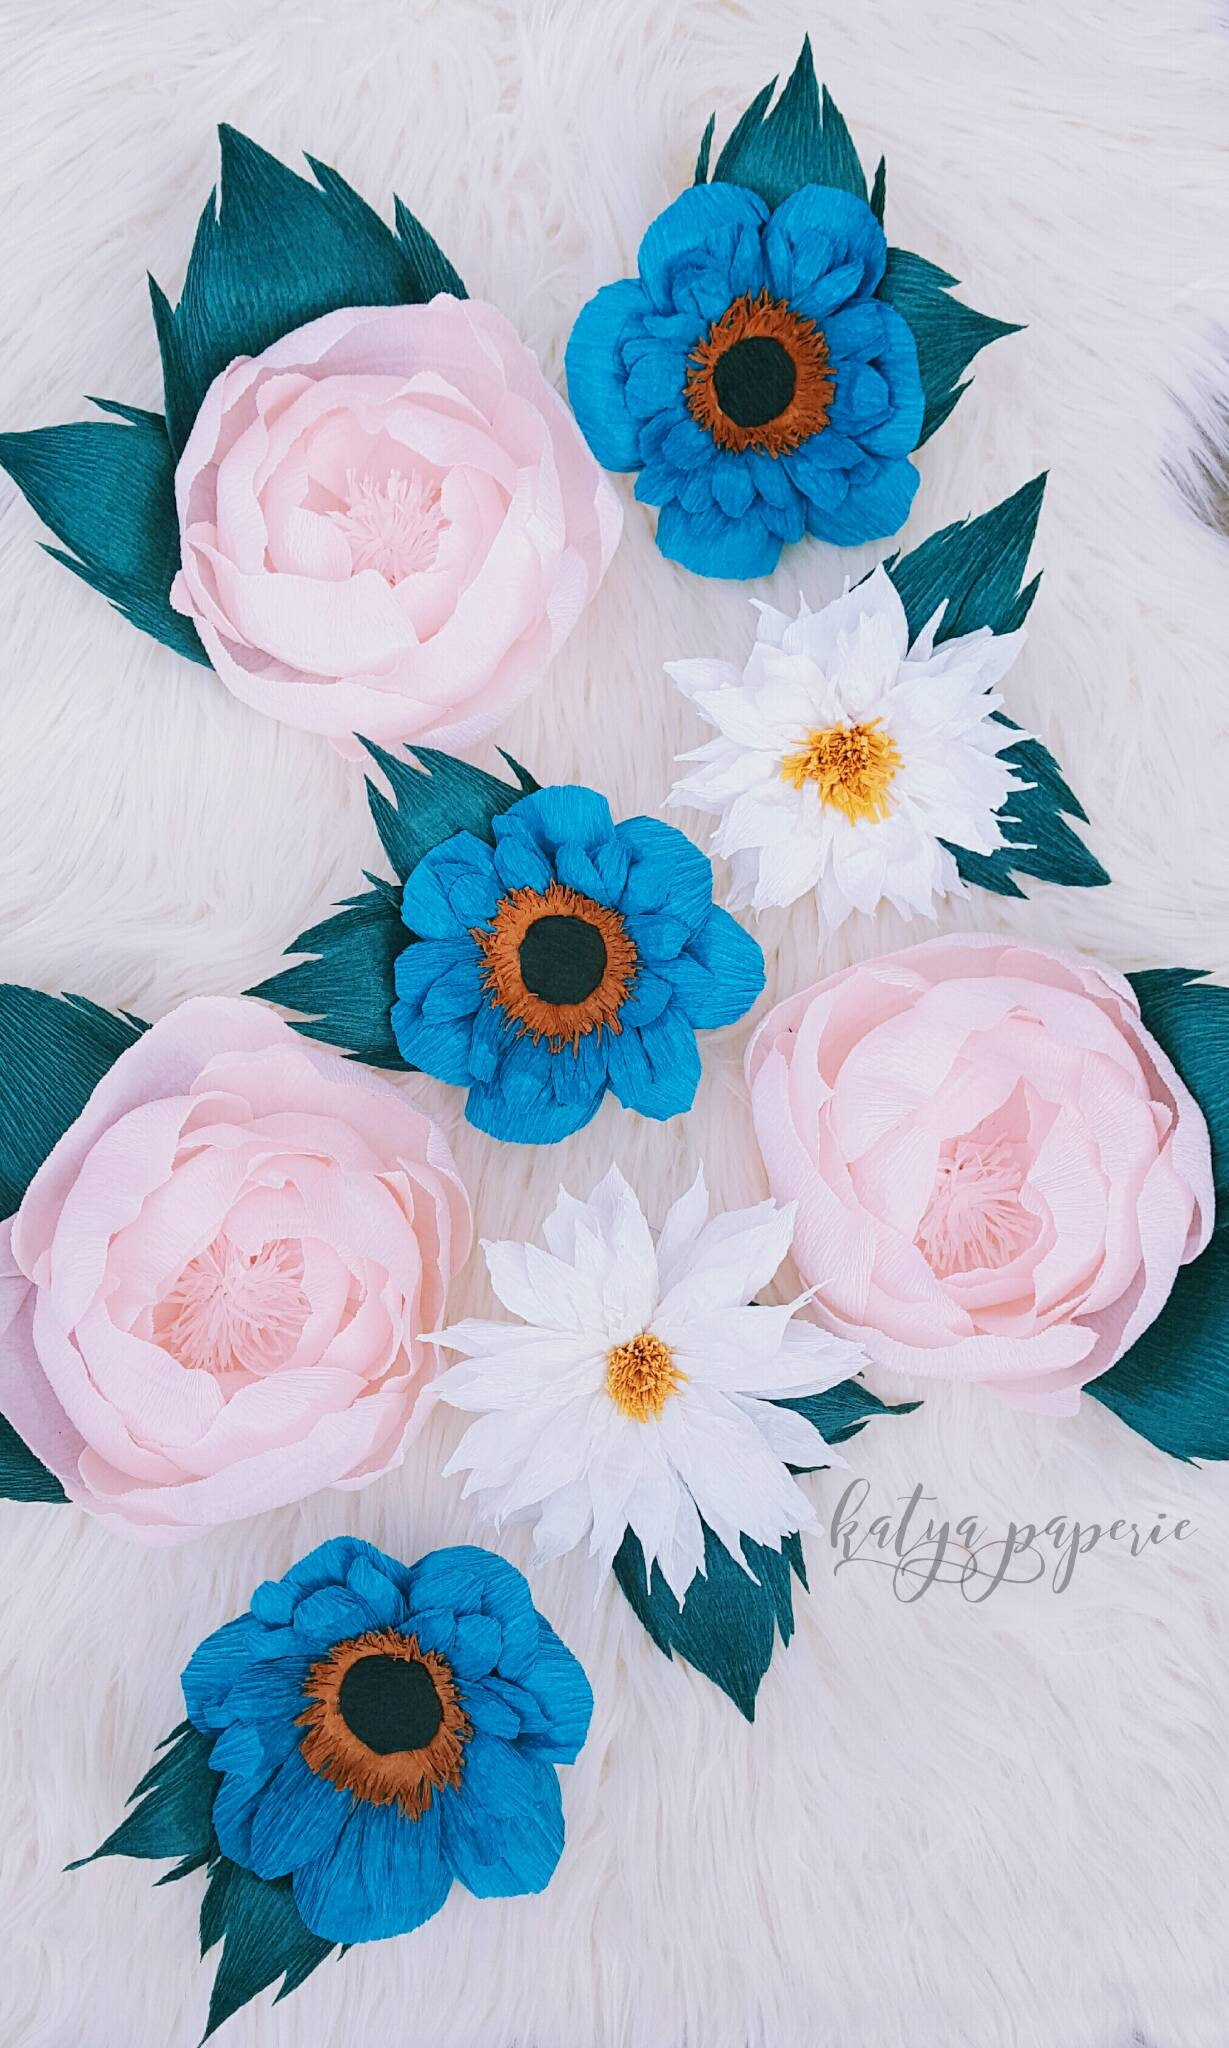 Idee Con Carta Crespa paper flower wall display. crepe paper dahlias, anemones, peonies. girl  nursery wall flowers. shop window decor garden party flower backdrop